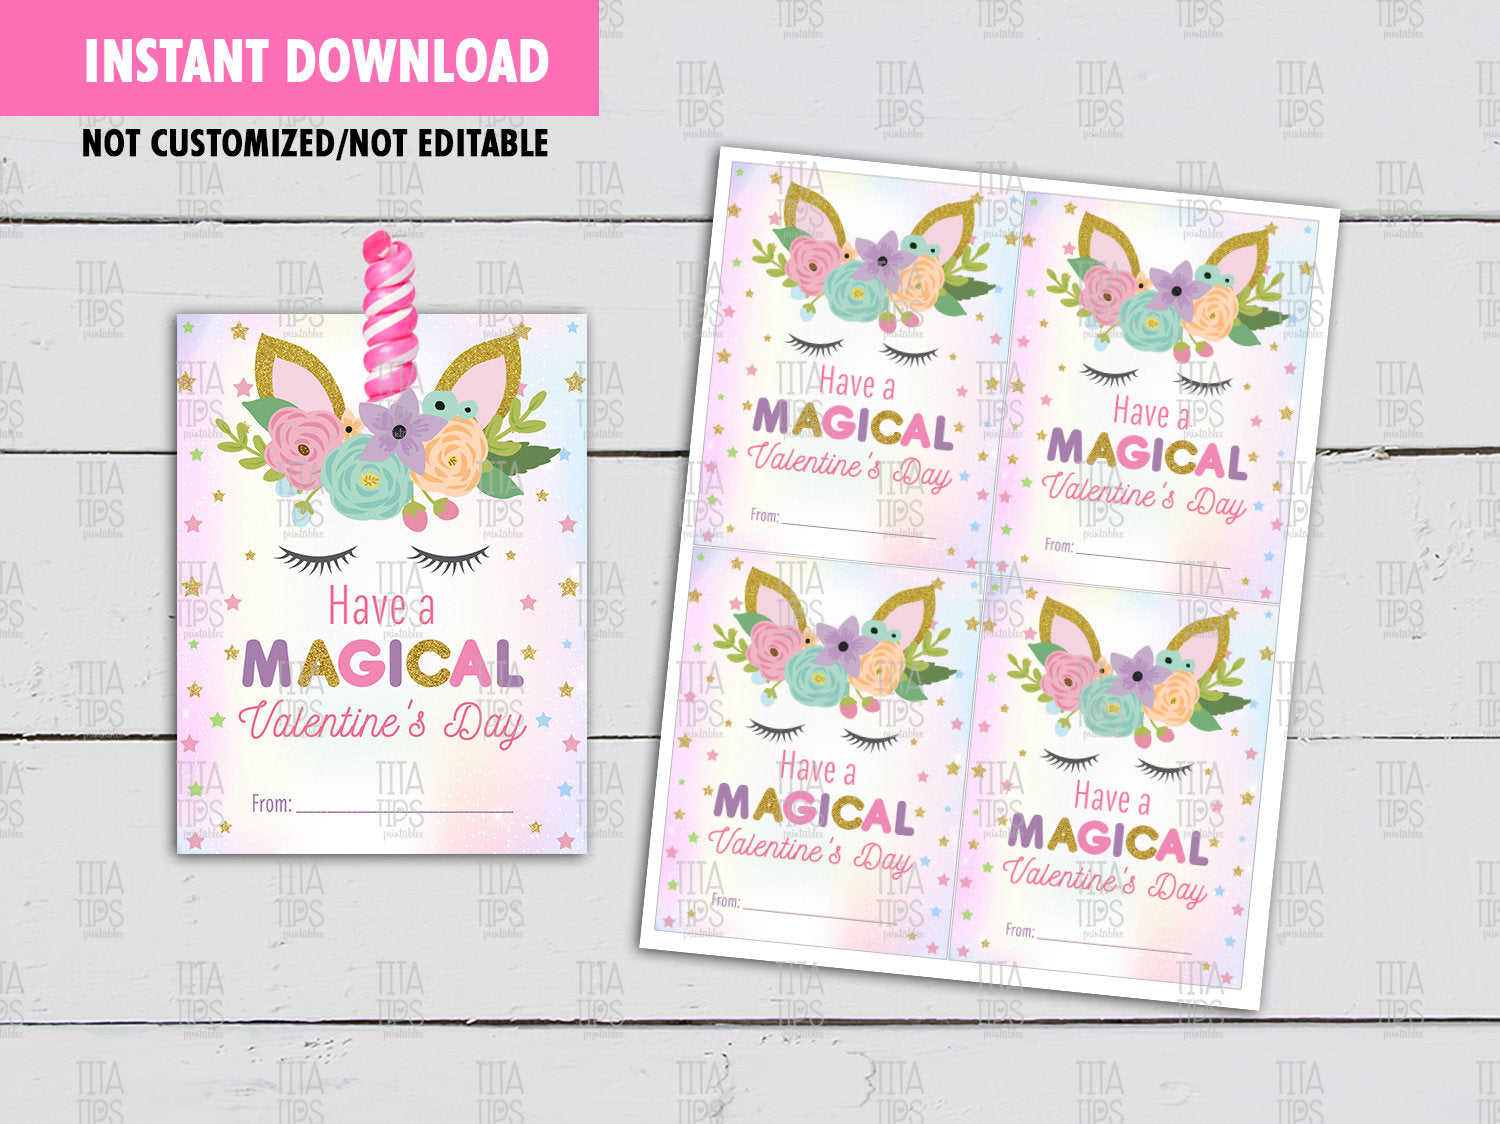 Valentines Unicorn Lollipop Holder, DIY Printable, Unicorn Exchange Tag, Instant Download - TitaTipsPrintables